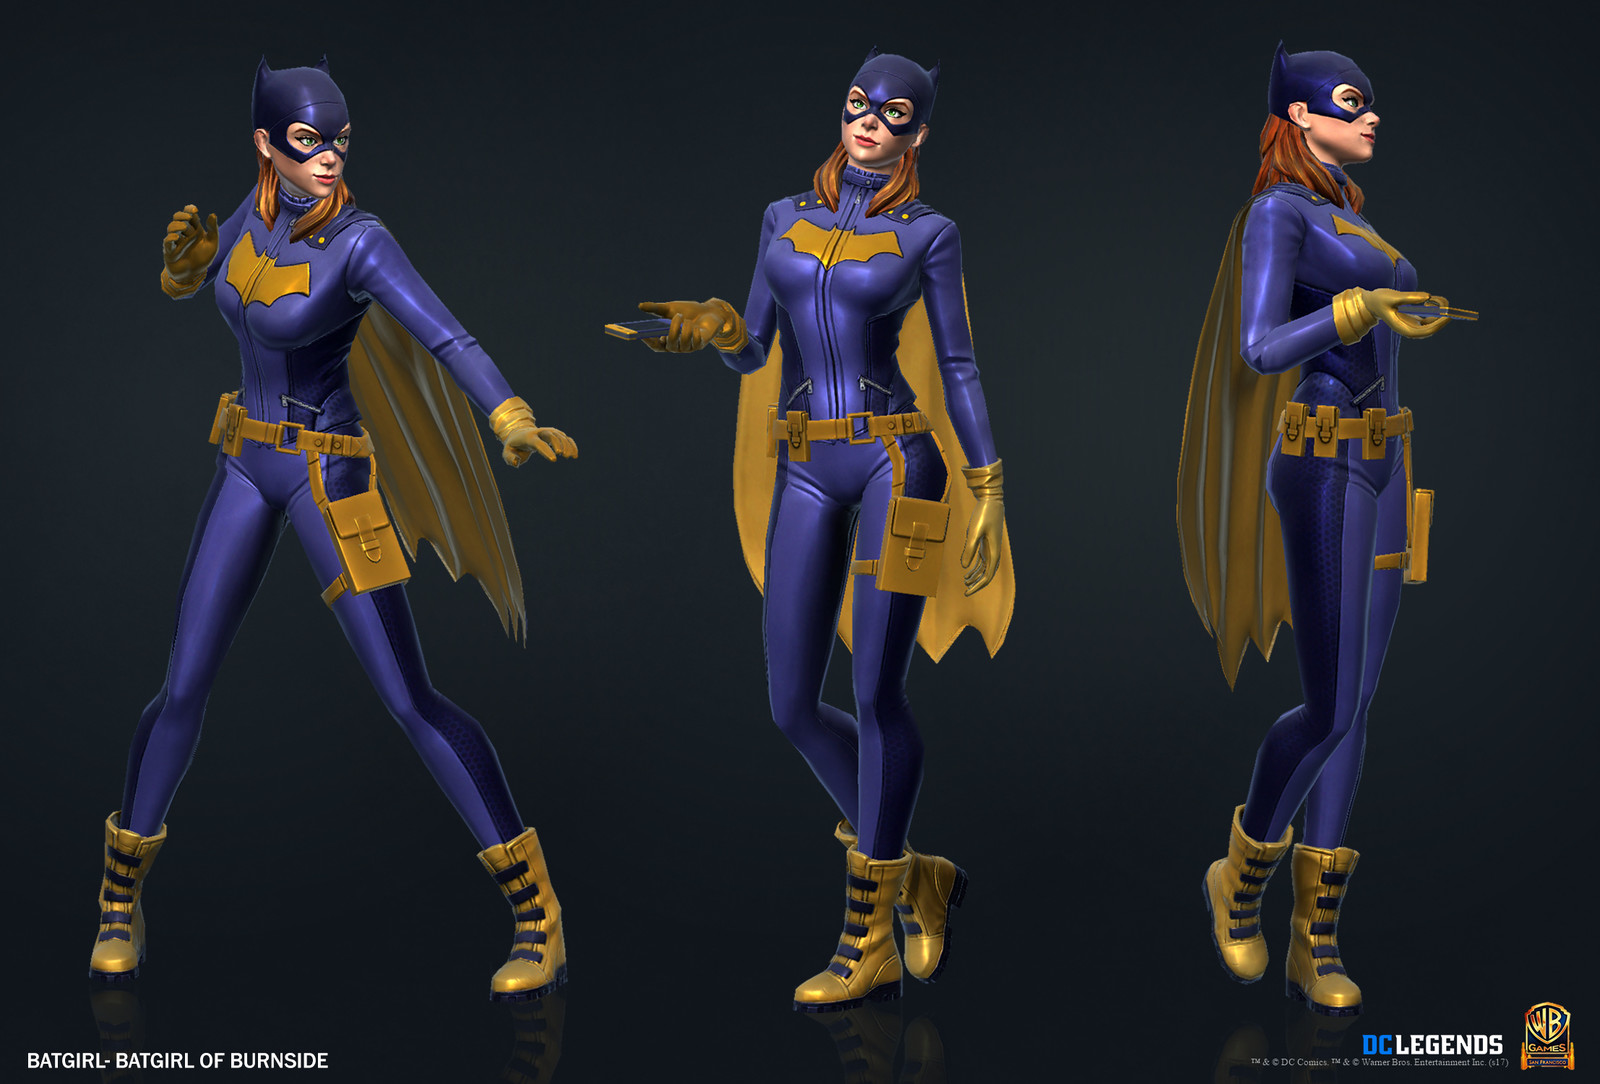 Batgirl Heroic High Poly, Low Poly Textures/Material work done by me. Additional Texture/Material pass done by Rachelle Danielle.